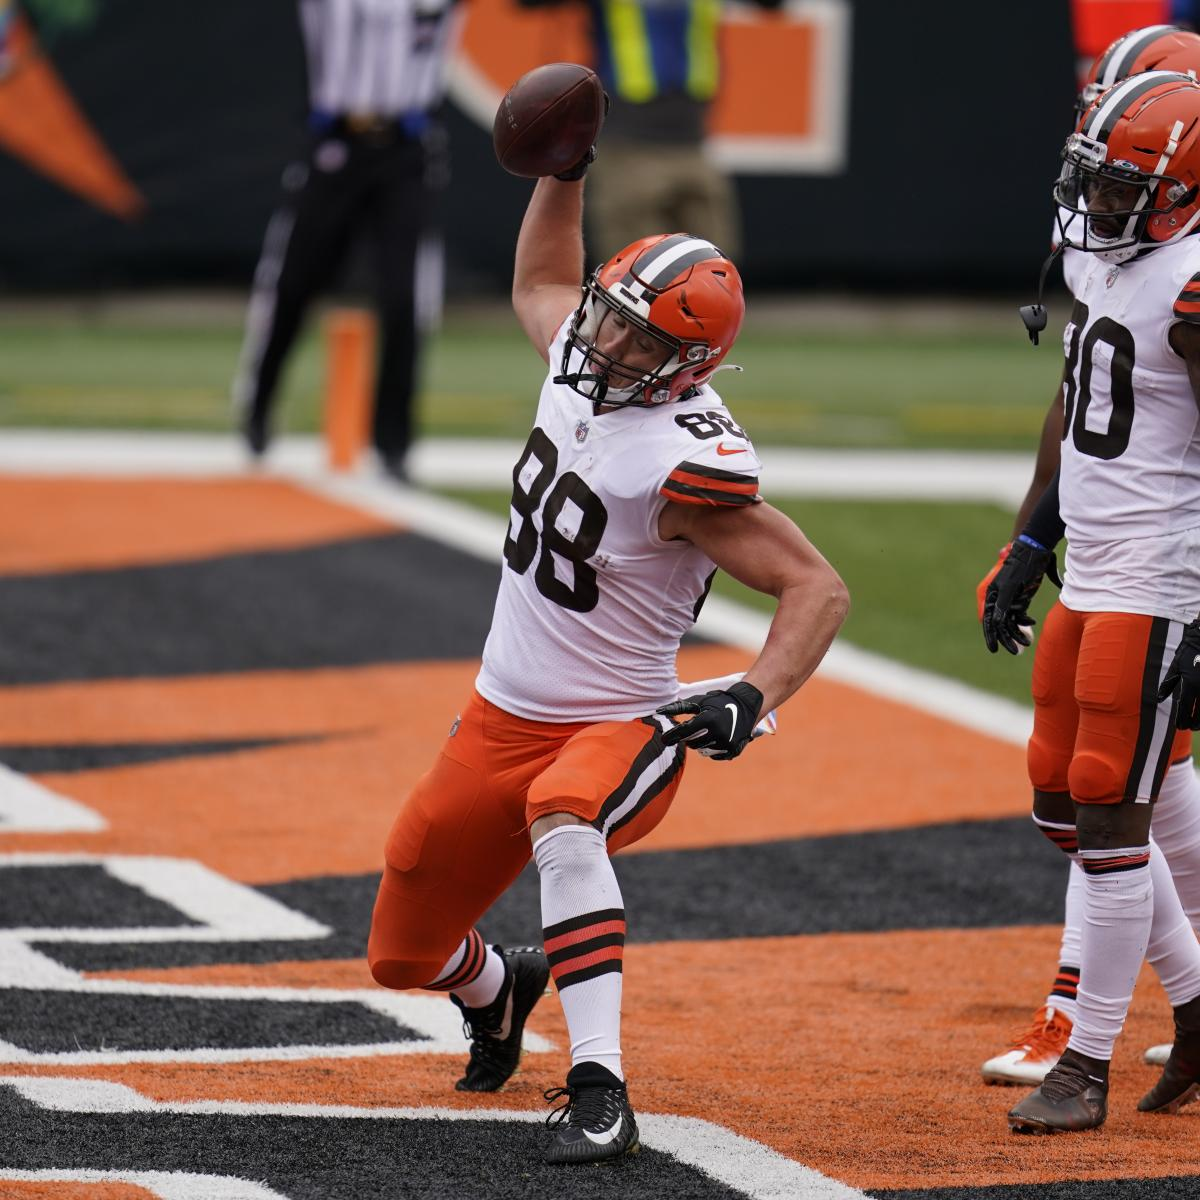 Week 8 Waiver Wire: Fantasy Football's Top Pickups and Breakout Candidates